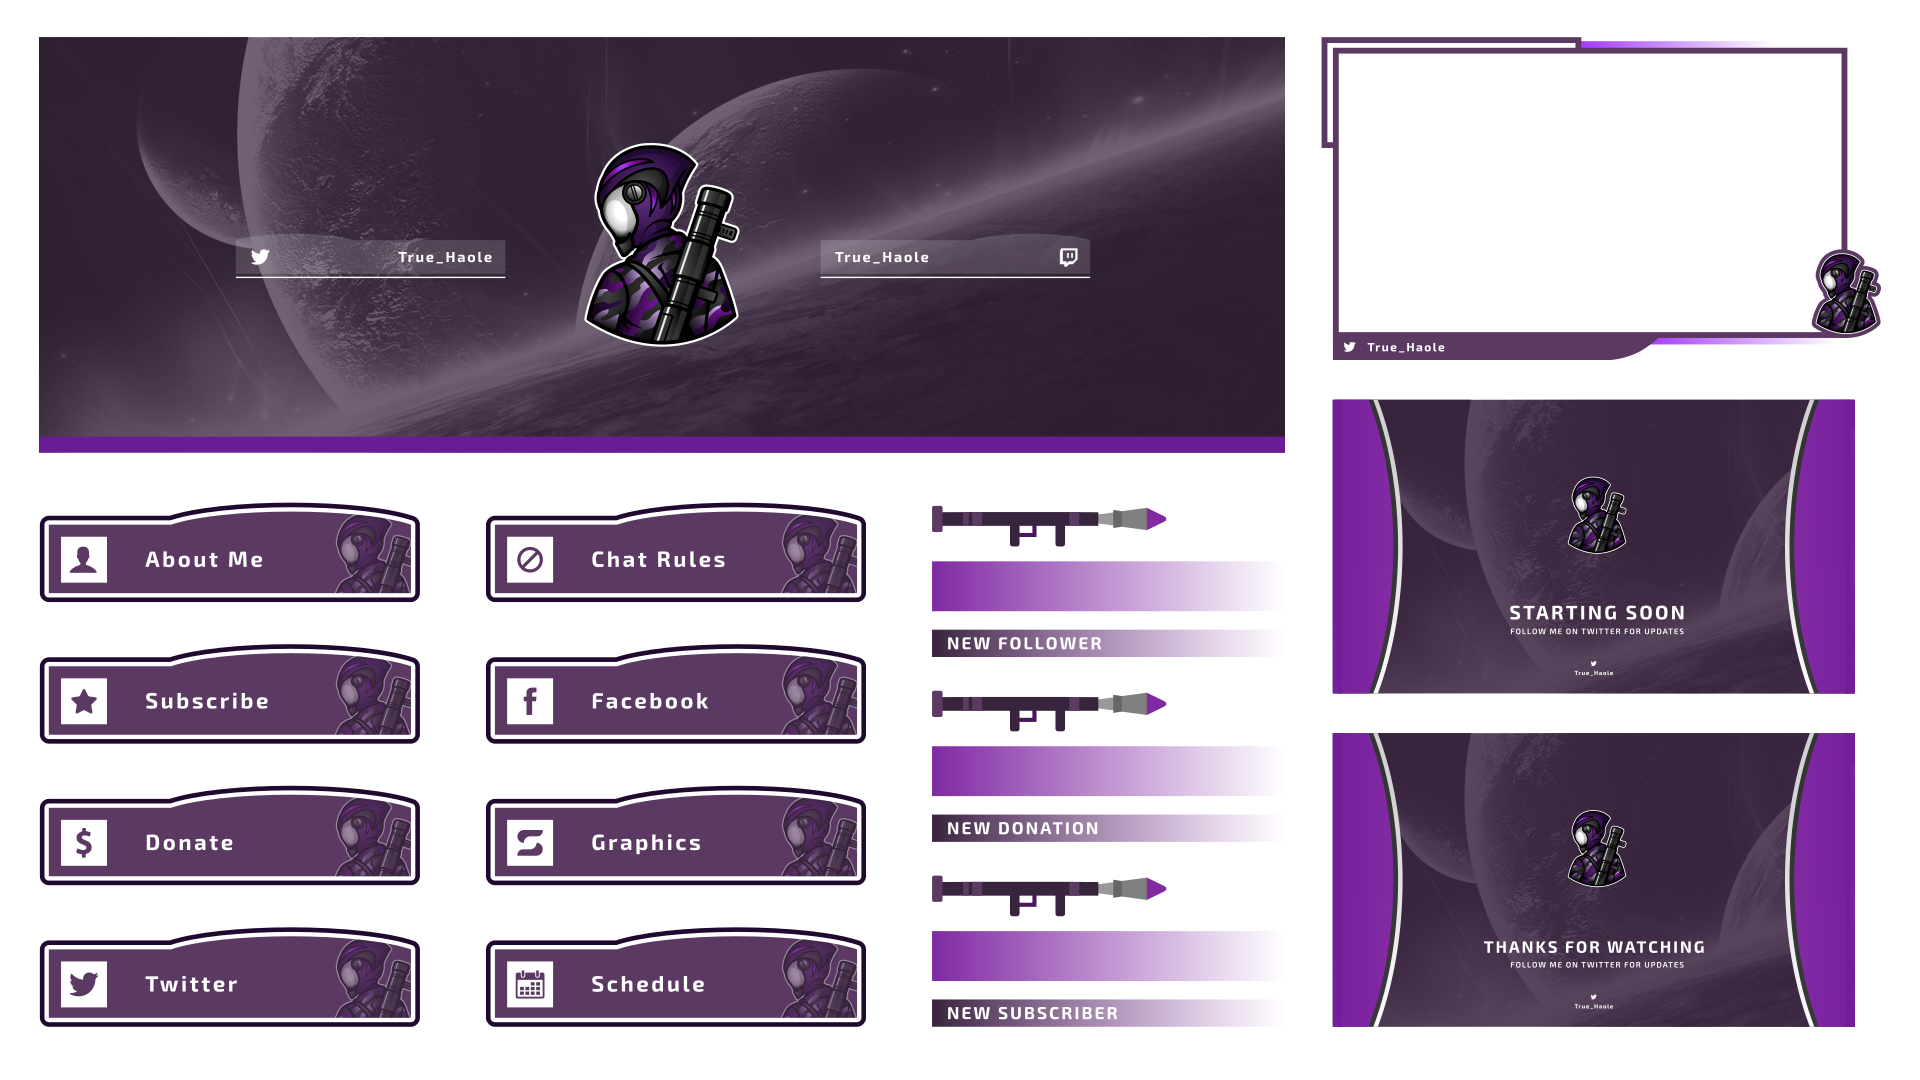 Sci-fi themed twitch graphics for a customer using a purple colour scheme